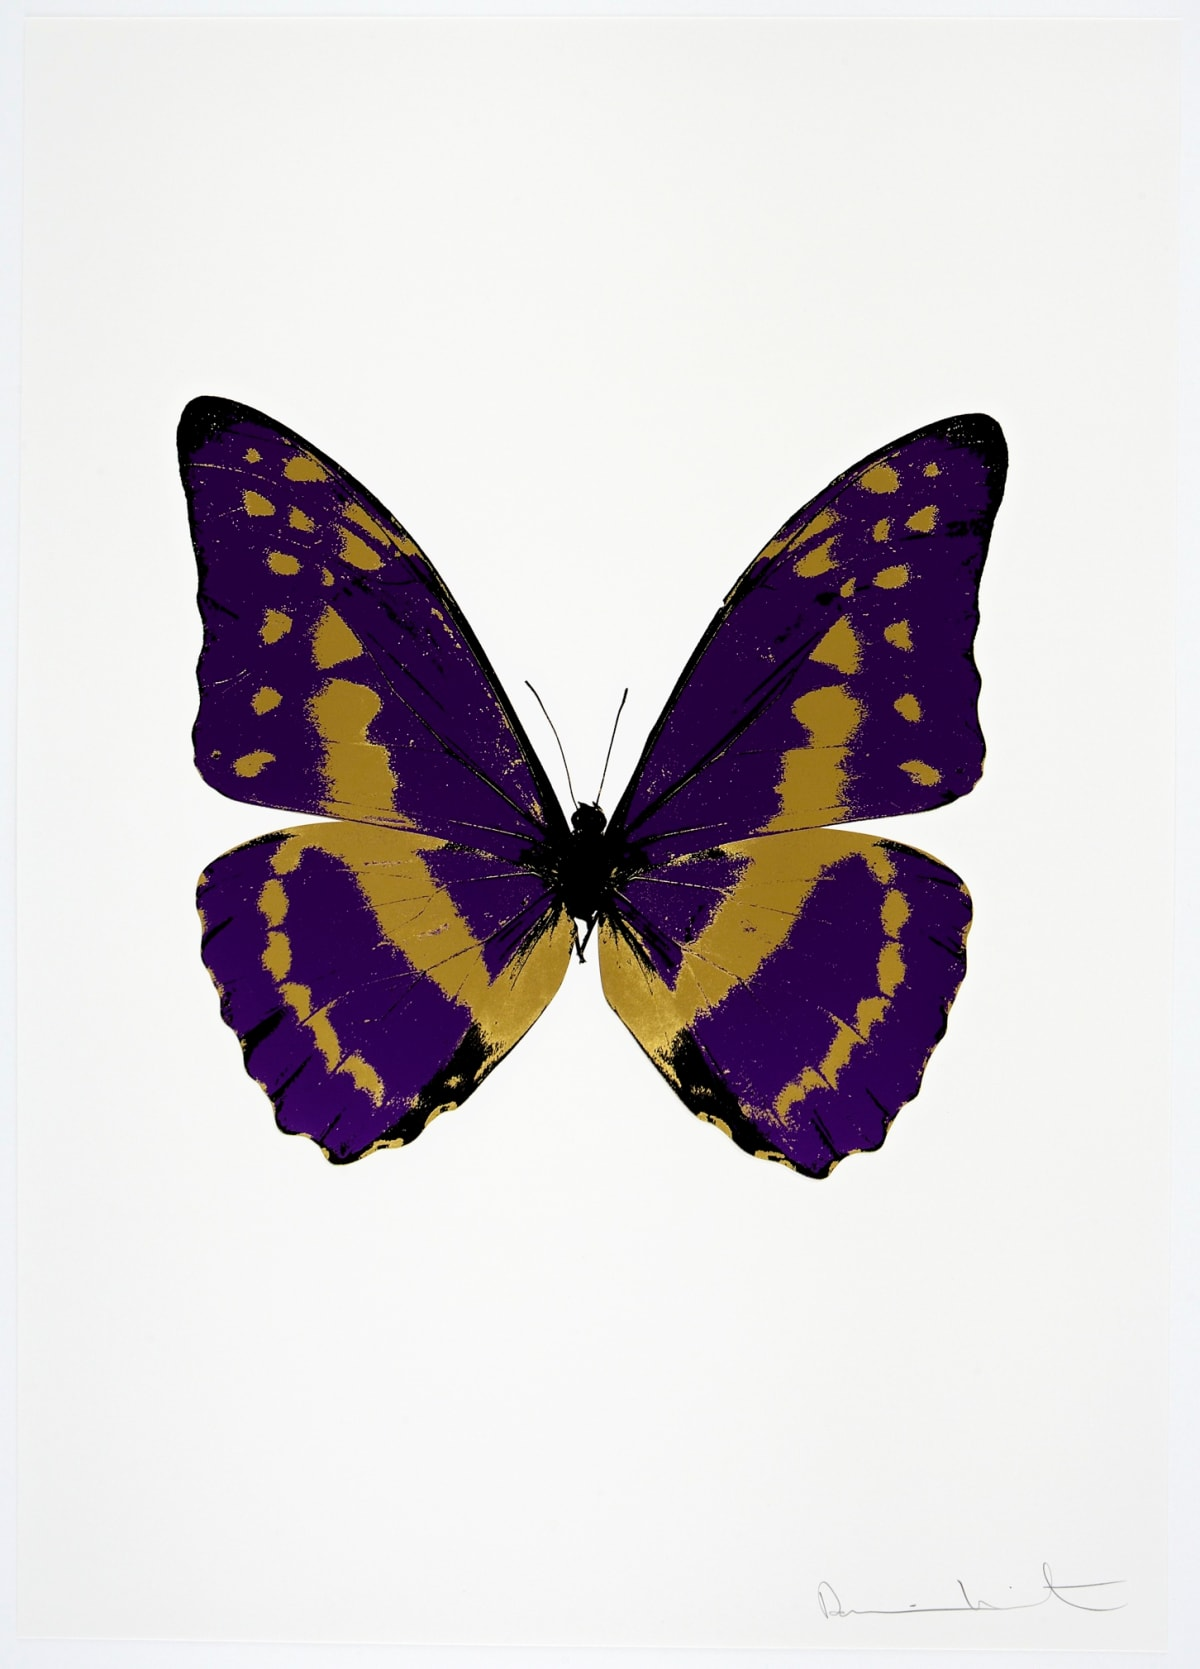 Damien Hirst The Souls III - Imperial Purple/Oriental Gold/Raven Black, 2010 3 colour foil block on 300gsm Arches 88 archival paper. Signed and numbered. Published by Paul Stolper and Other Criteria 72 x 51cm OC7953 / 660-56 Edition of 15